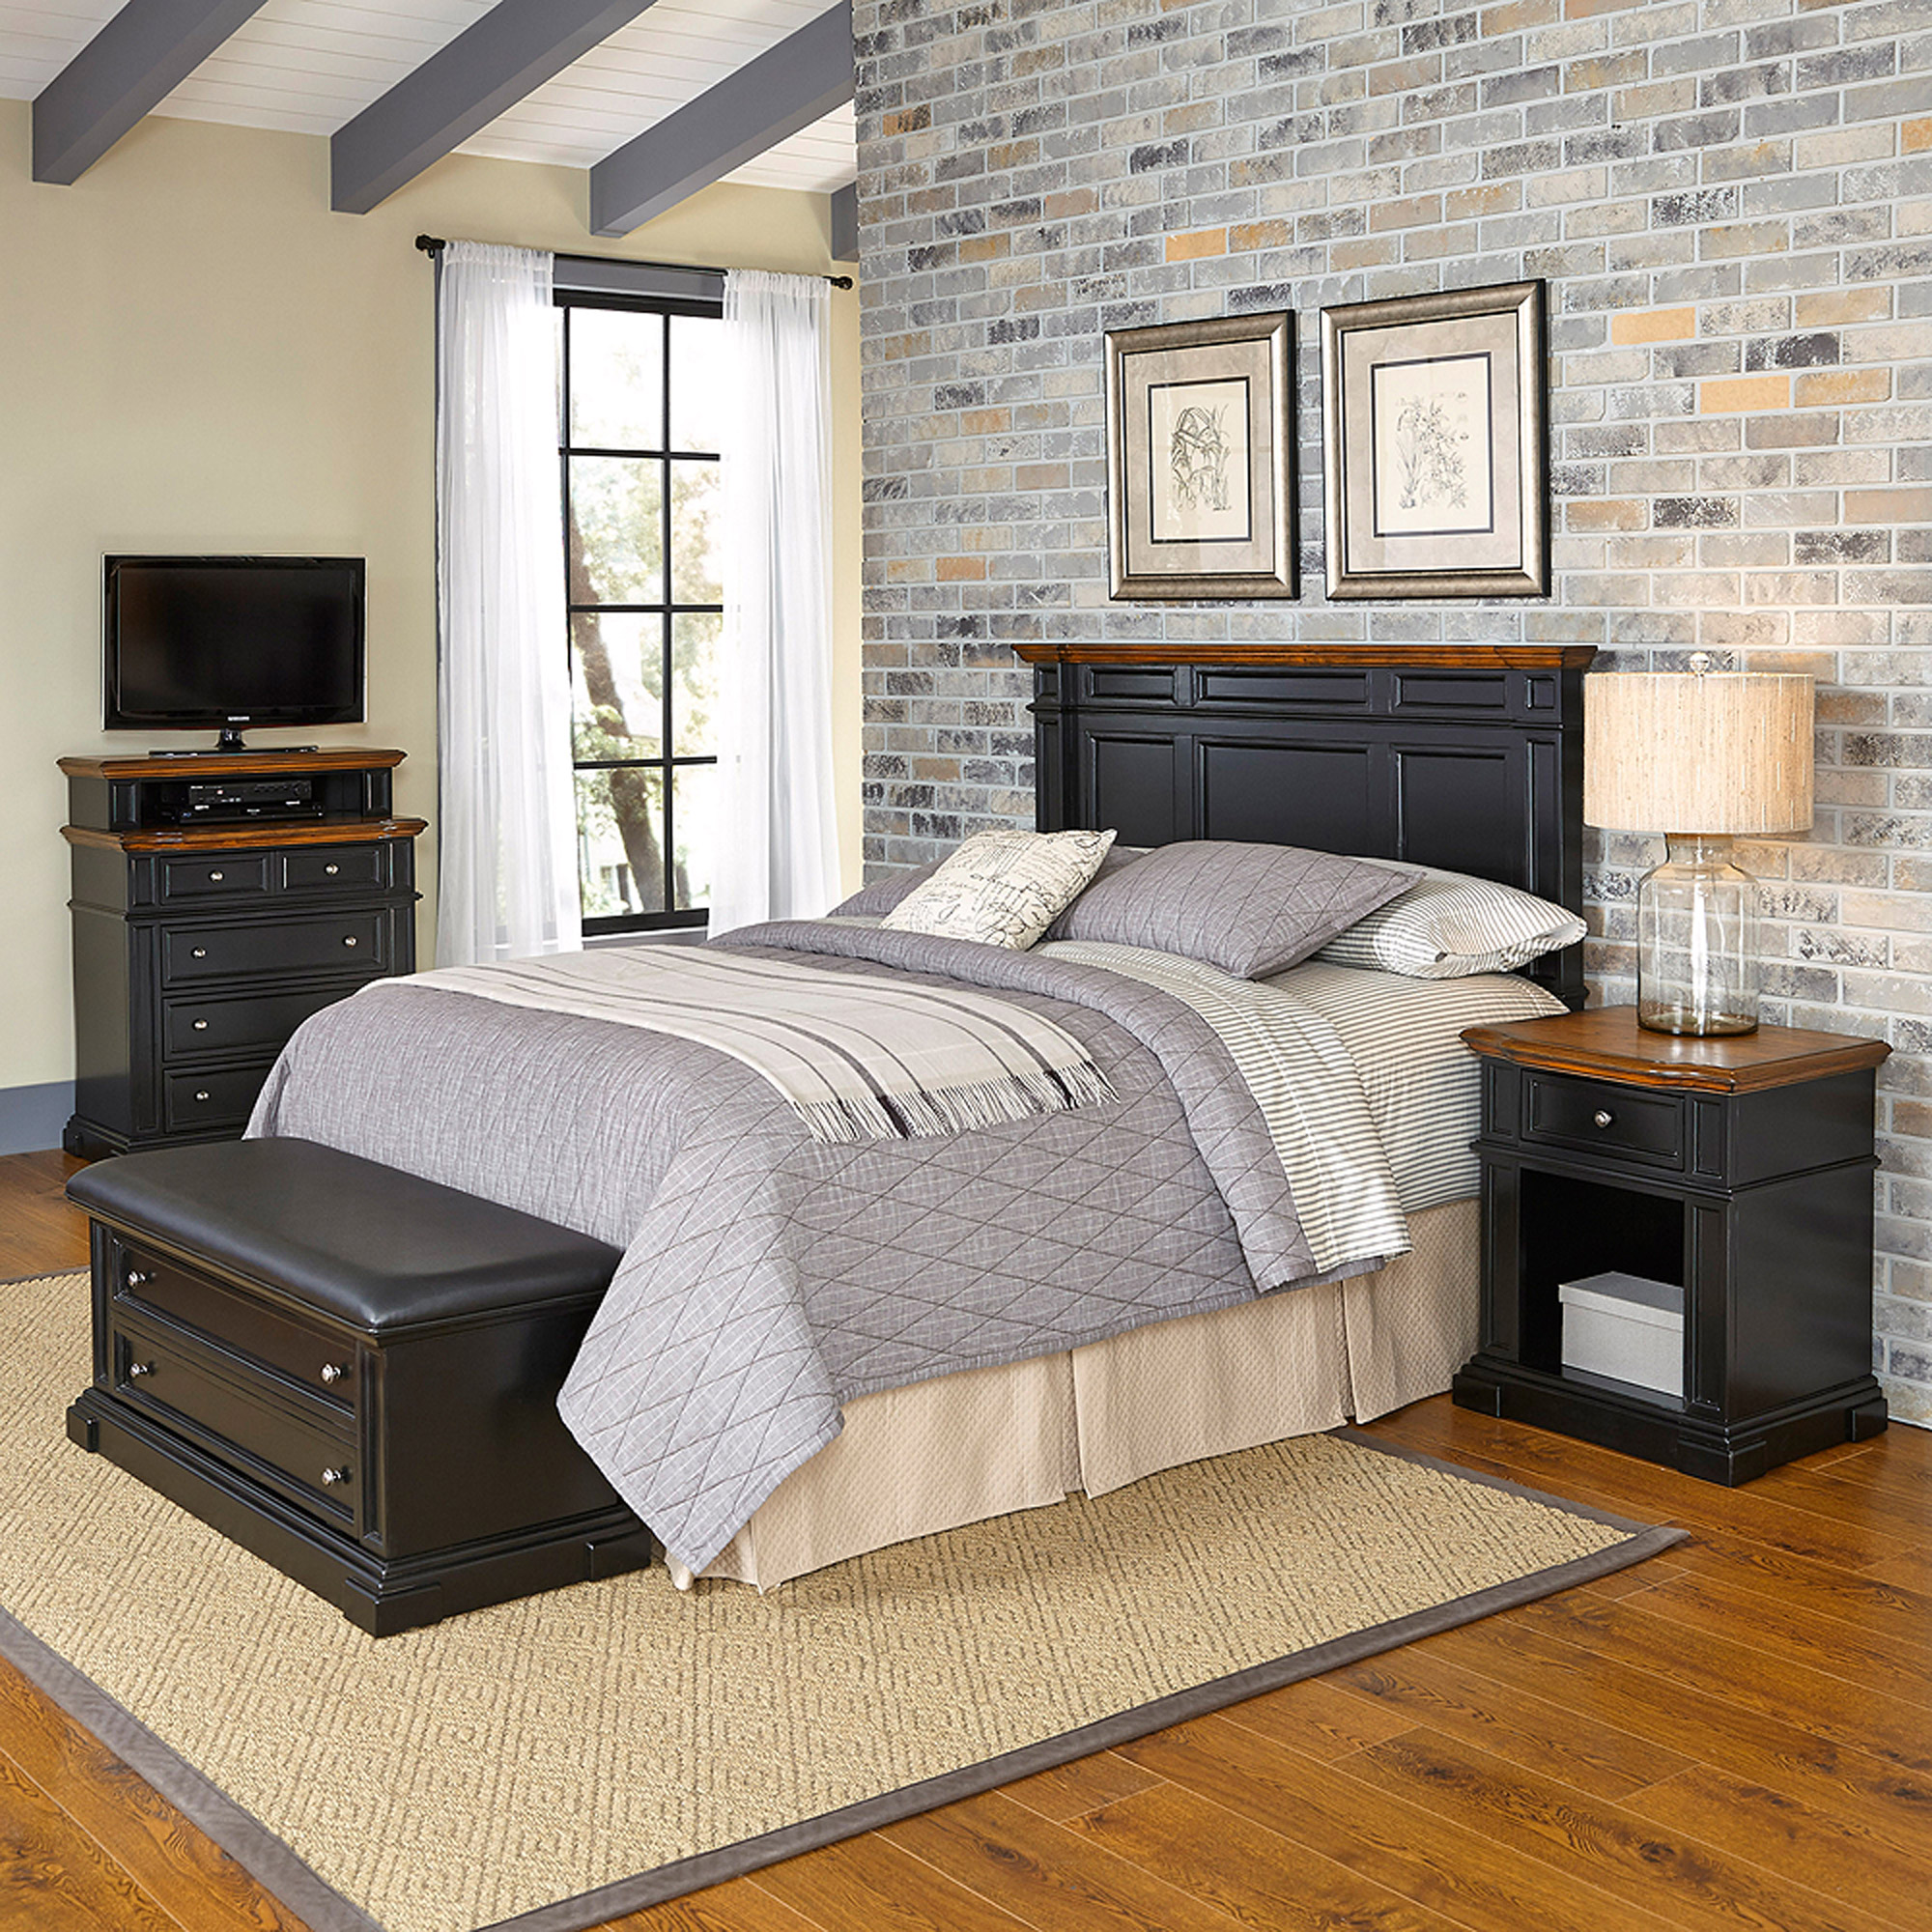 Home Styles Americana Queen/Full Headboard, Night Stand, Media Chest and Upholstered Bench